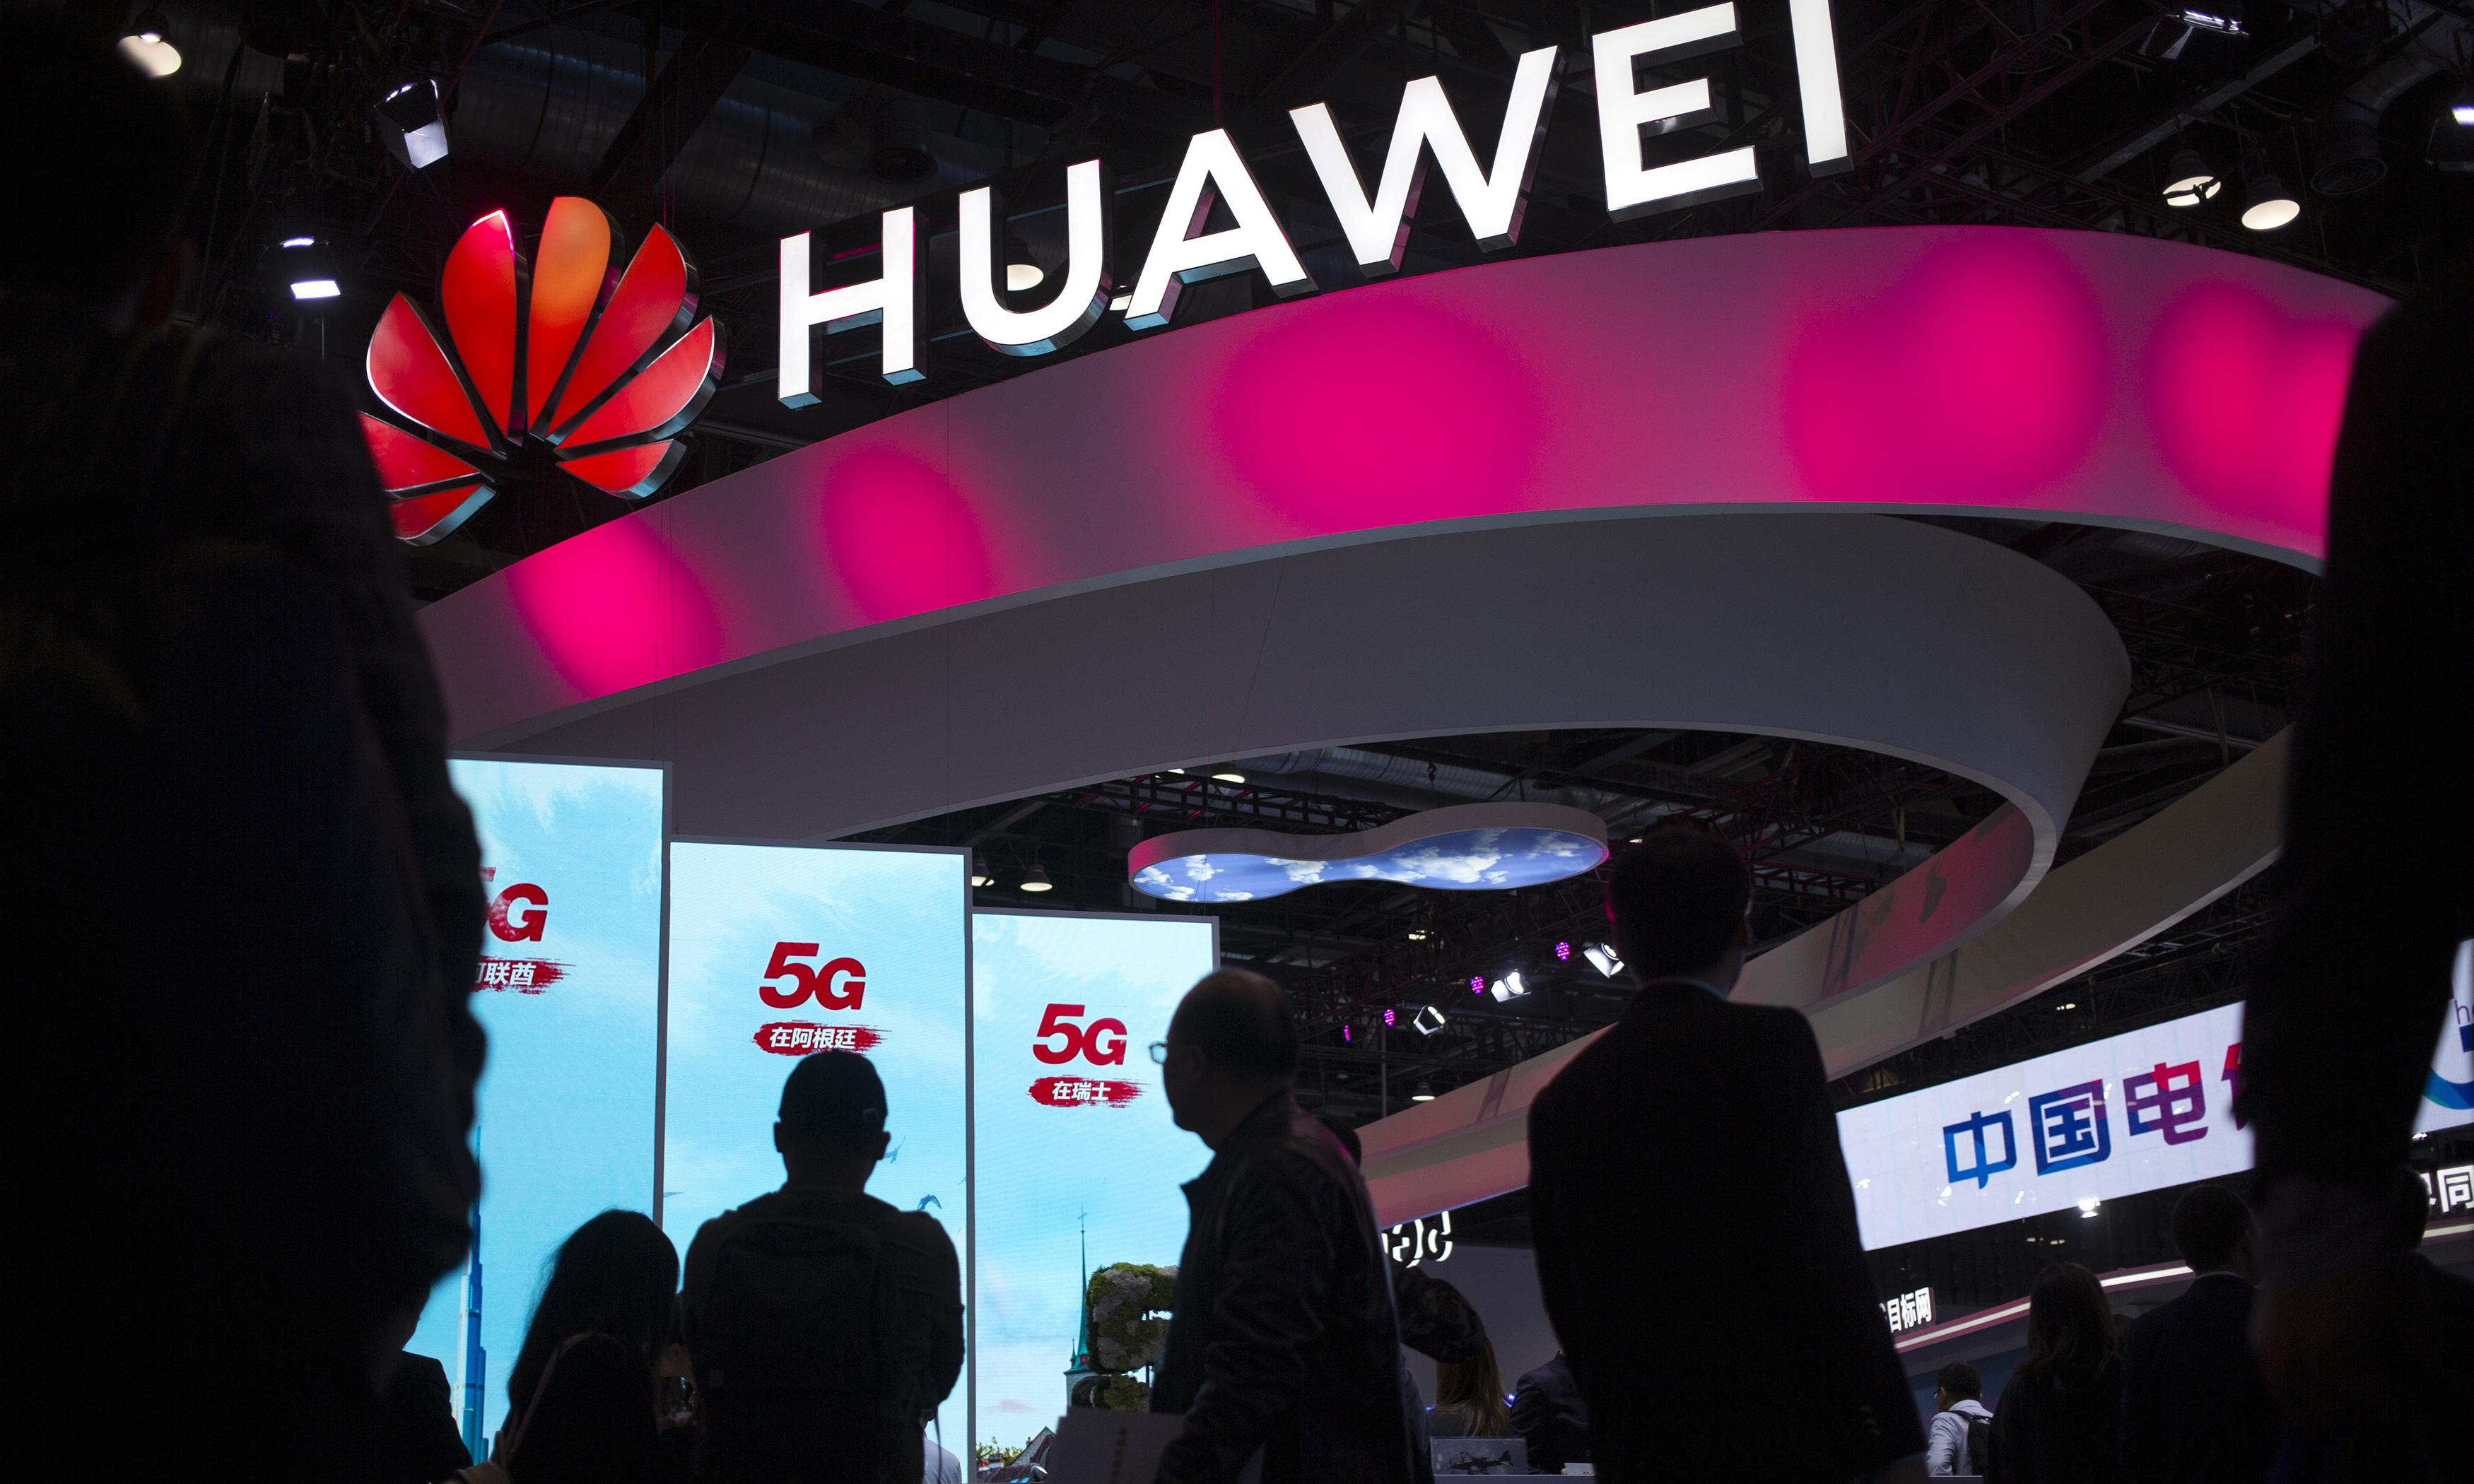 Huawei shut out from scheme to see how 5G can link communities